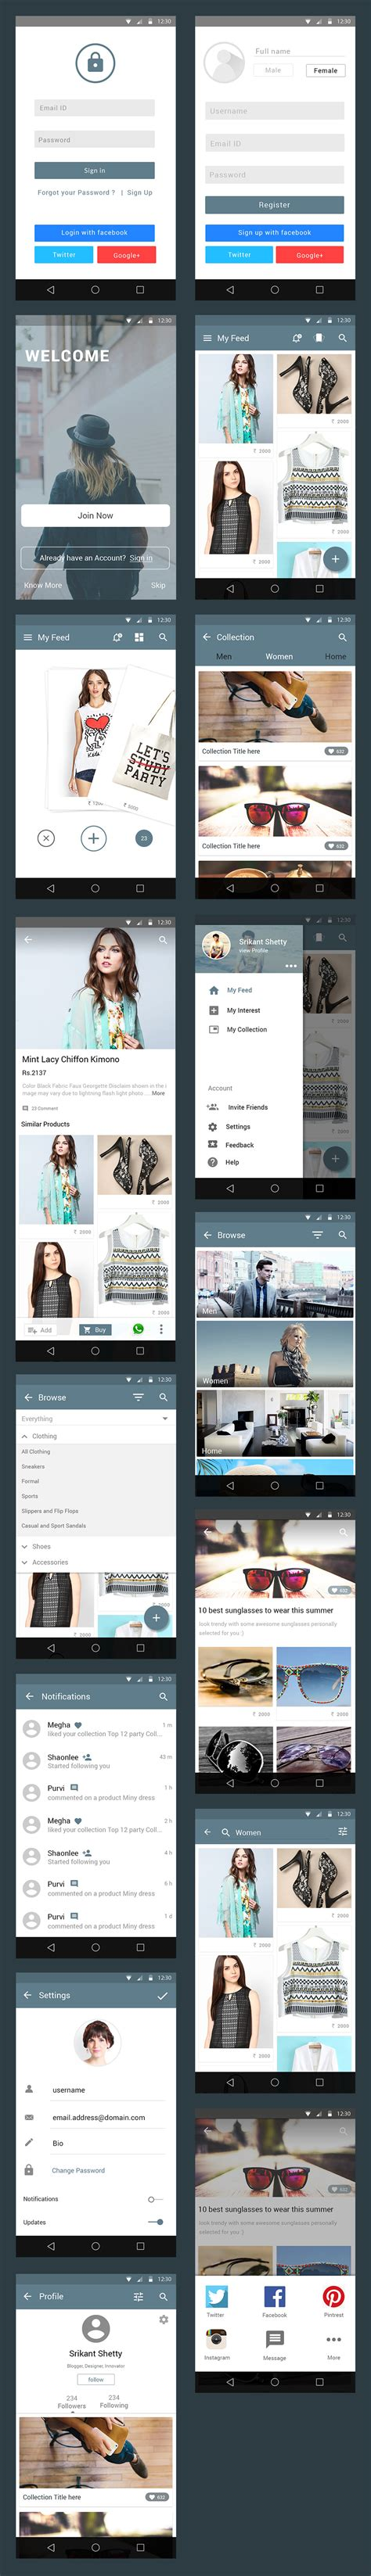 ecommerce app ui free psd download download psd style free e commerce app ui kit graphicsfuel